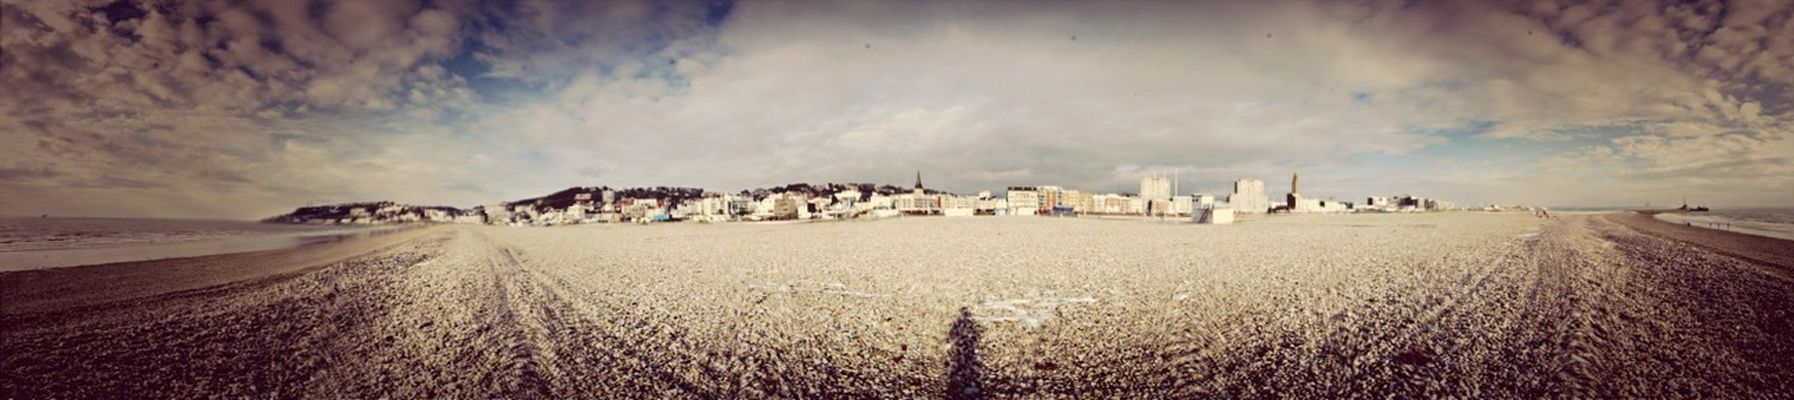 Panorama at Plage du Havre by Sebdevinc